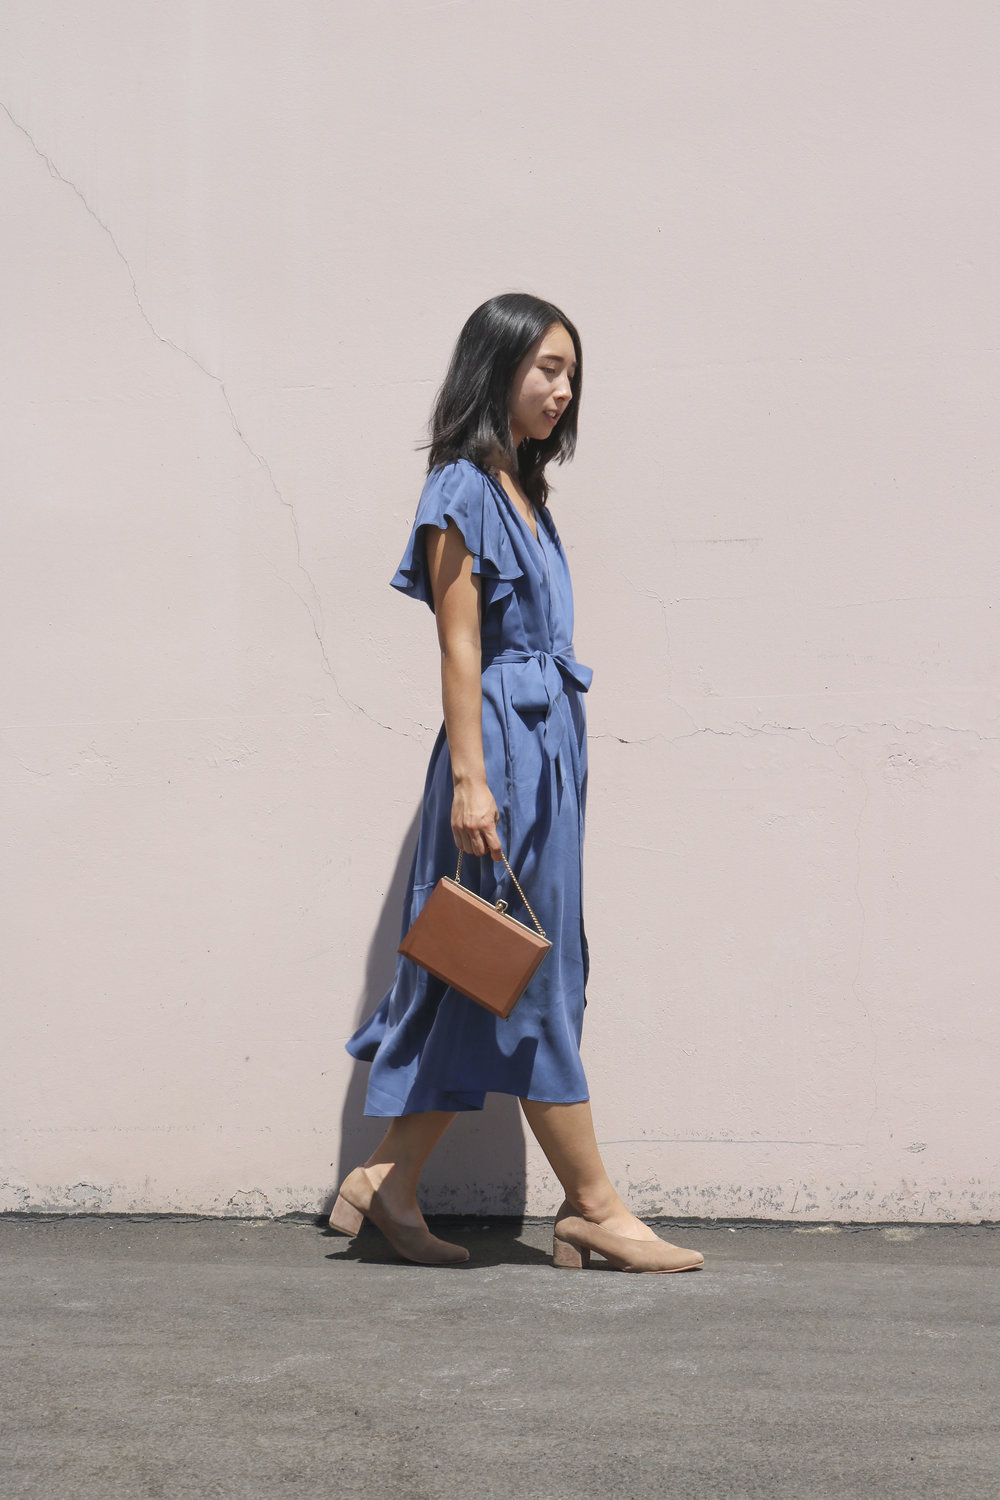 Sarina styles the Belu Pump with a wrap dress by Georgette Crimson and a vintage box purse.